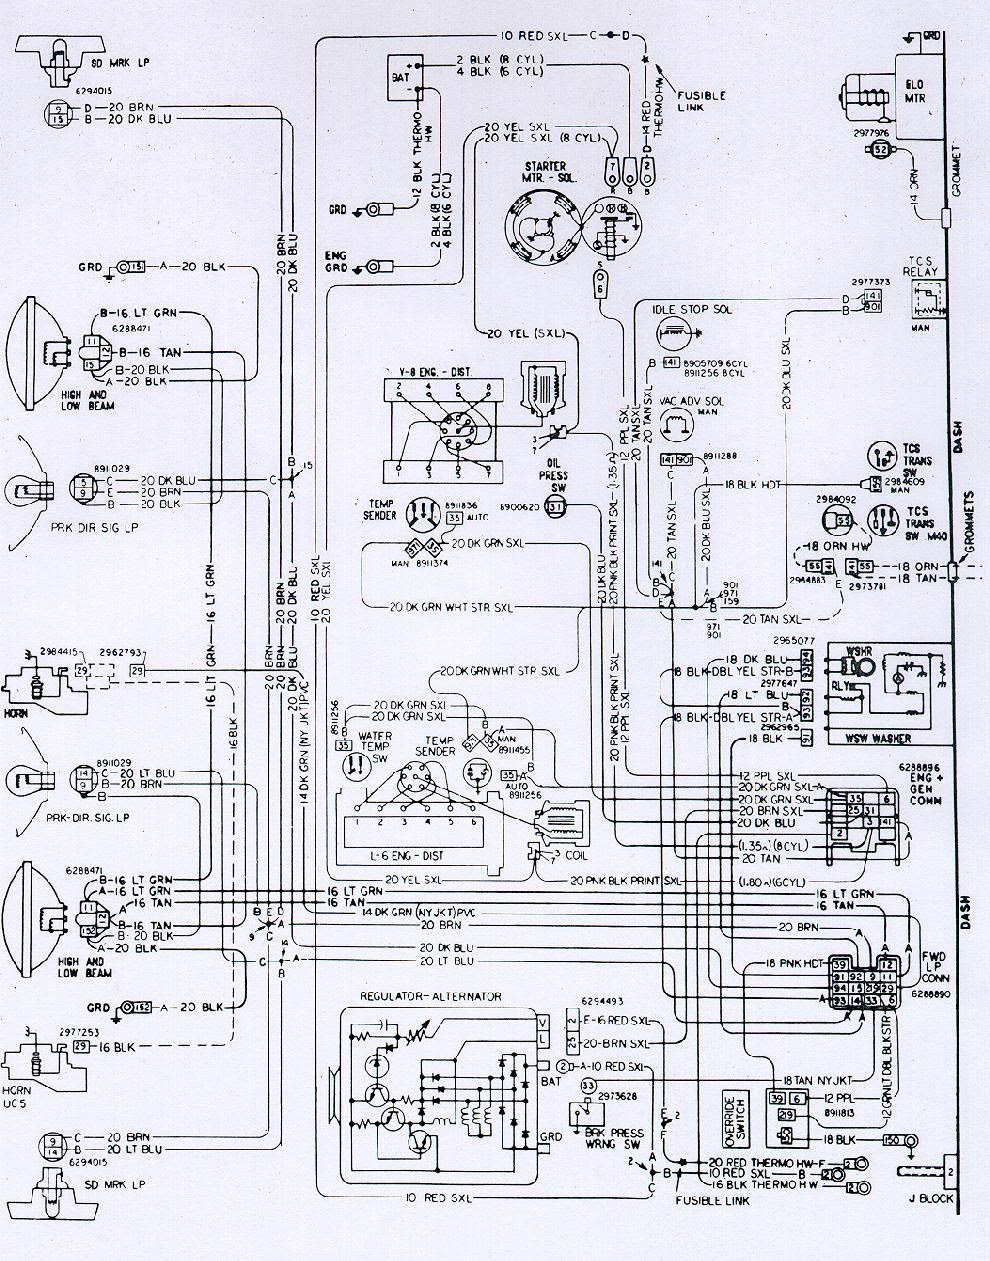 1968 Camaro Wiring Harness Diagram Printable Wiring Diagram Workstation Workstation Pasticceriagele It